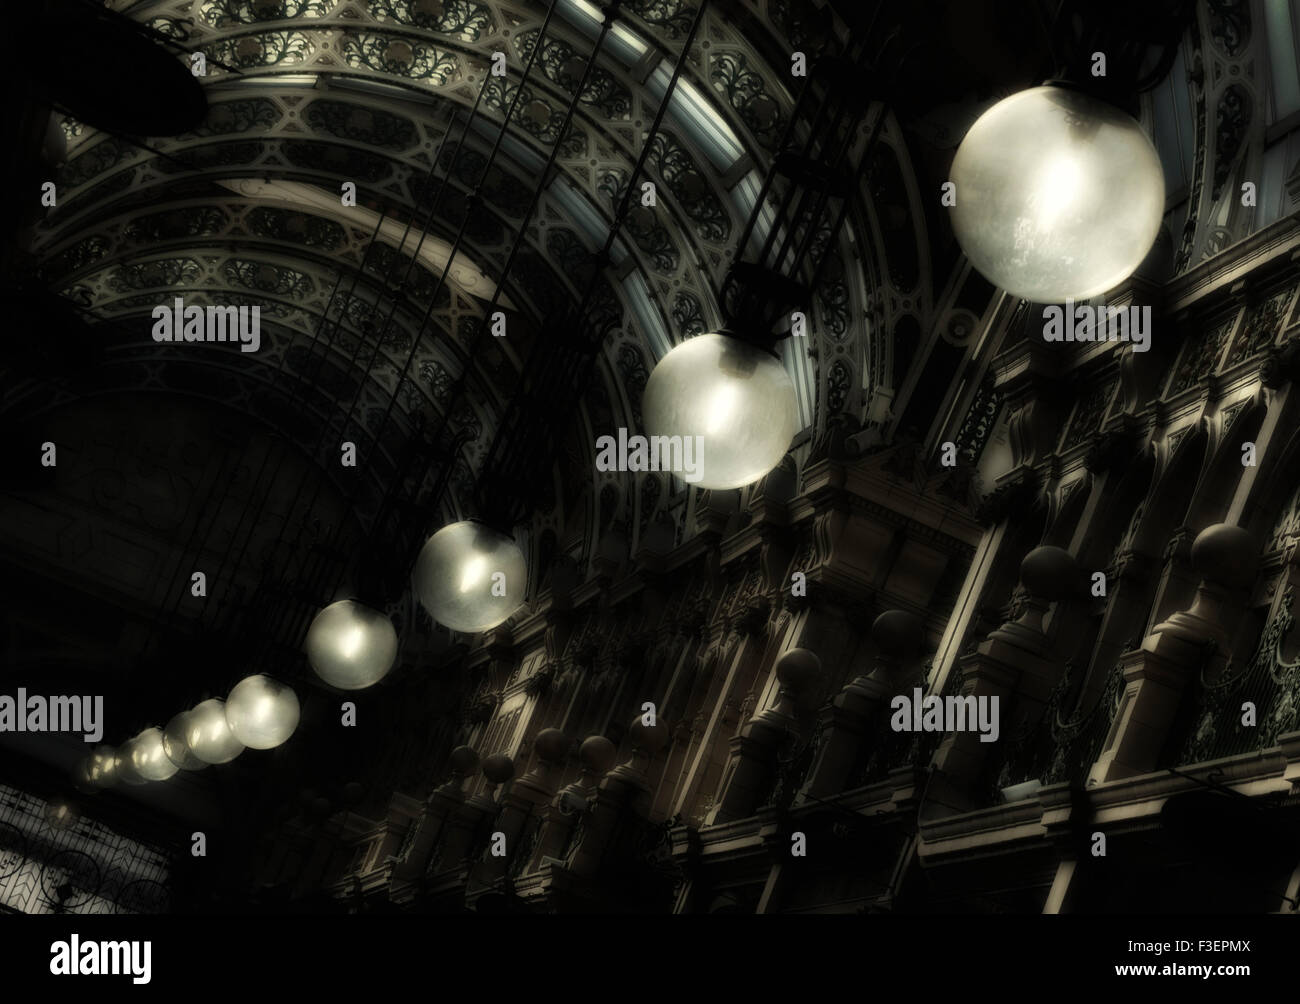 Lights glowing in the County Arcade, Victoria Quarter, Leeds, Yorkshire, England, UK. - Stock Image